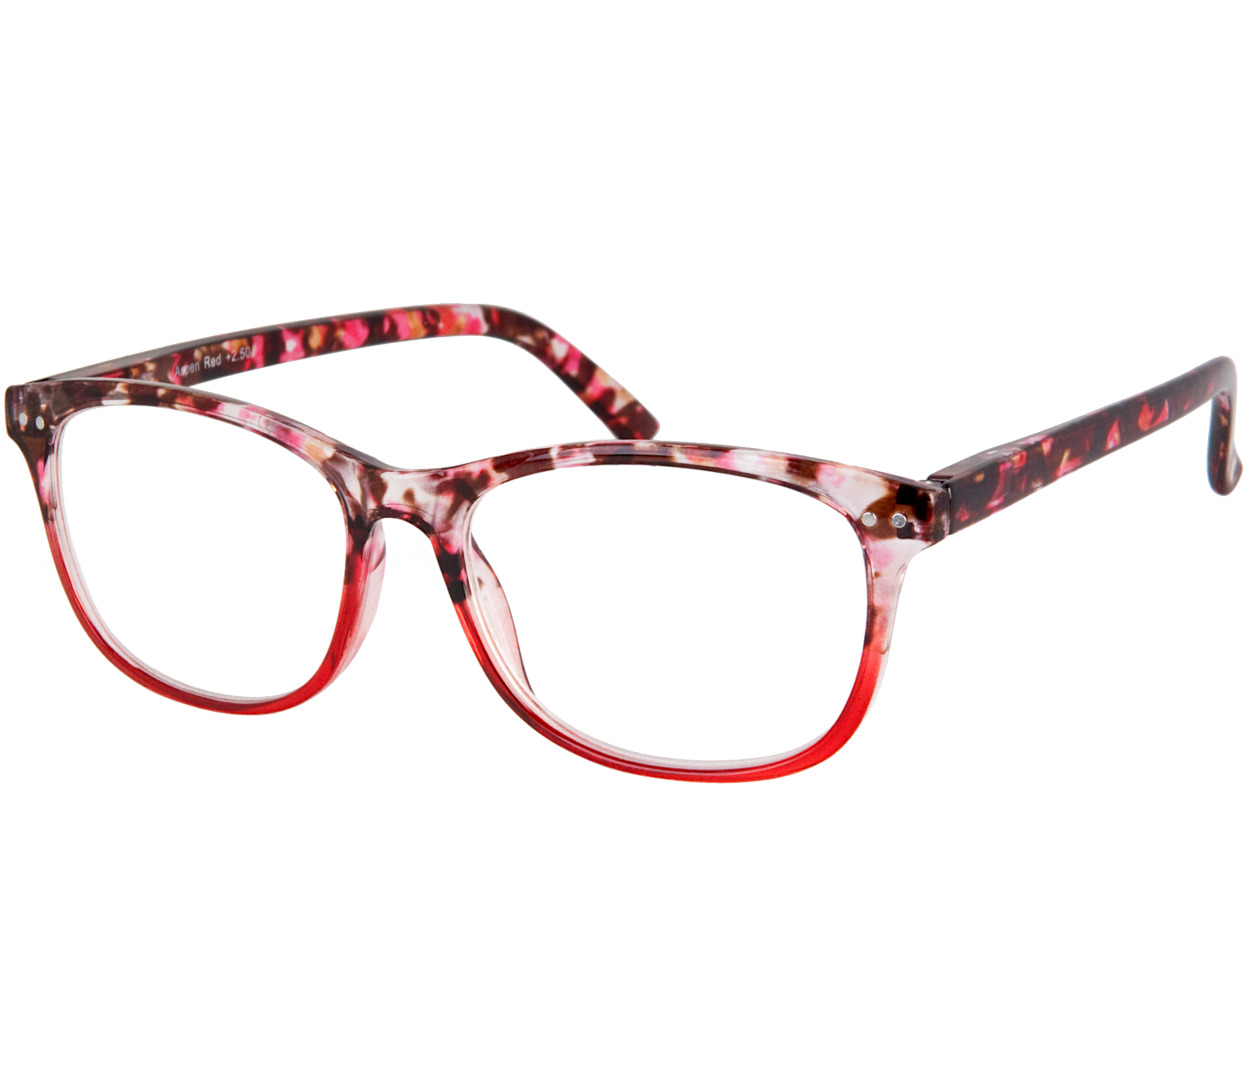 Main Image (Angle) - Aspen (Red) Reading Glasses